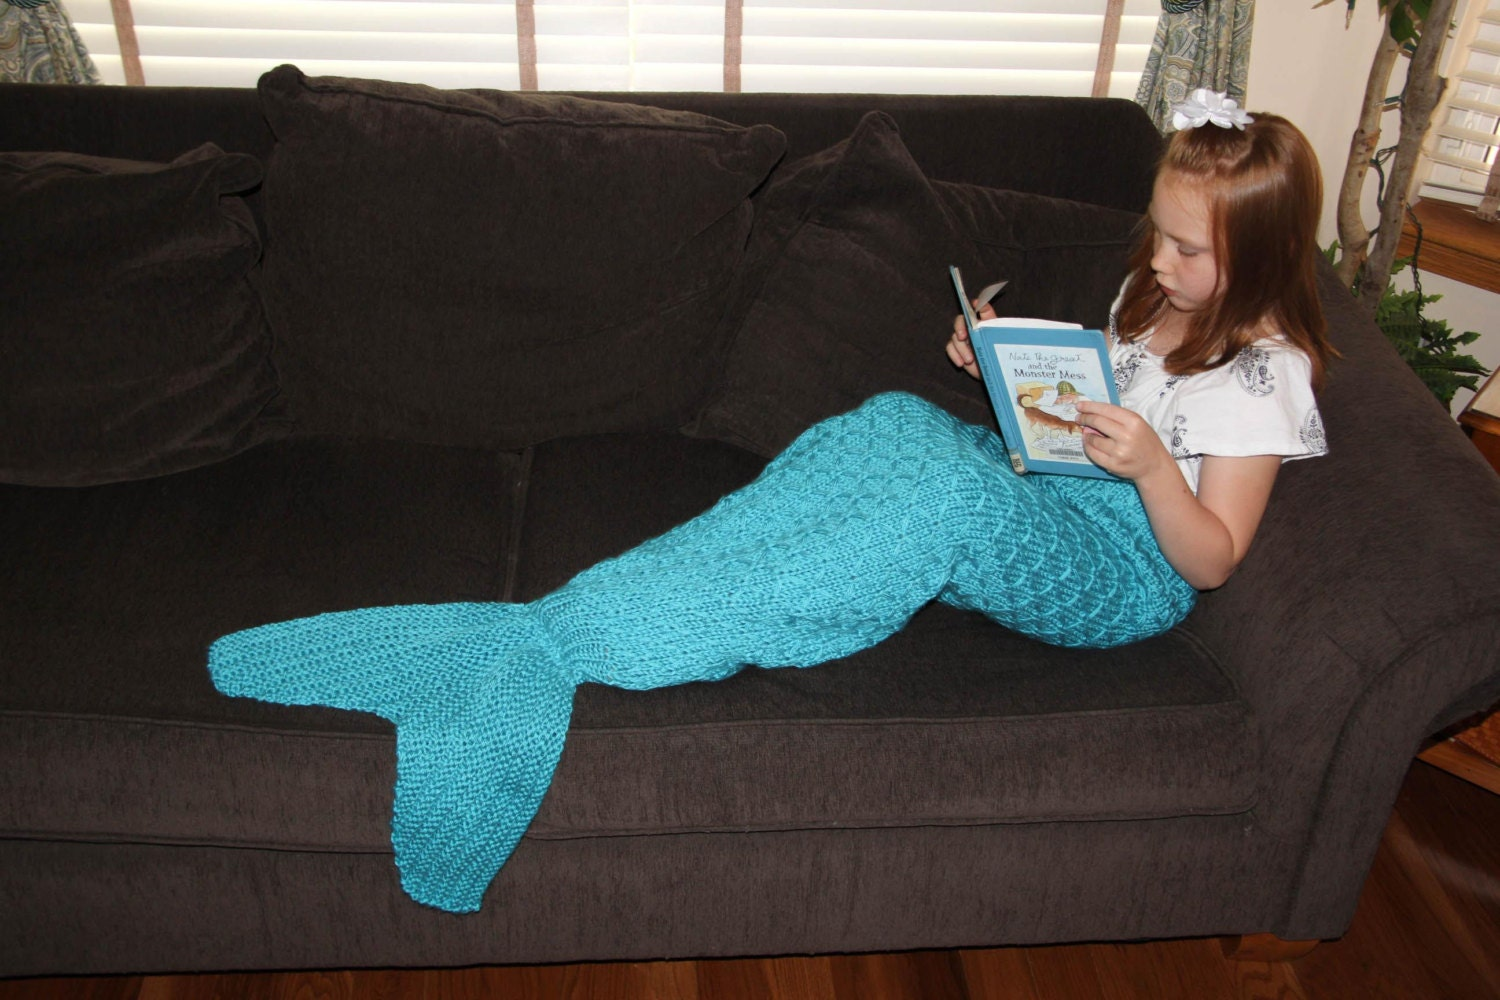 Knitting Pattern For Baby Mermaid Blanket : Mermaid Tail Lapghan Blanket Knitting Pattern for Children